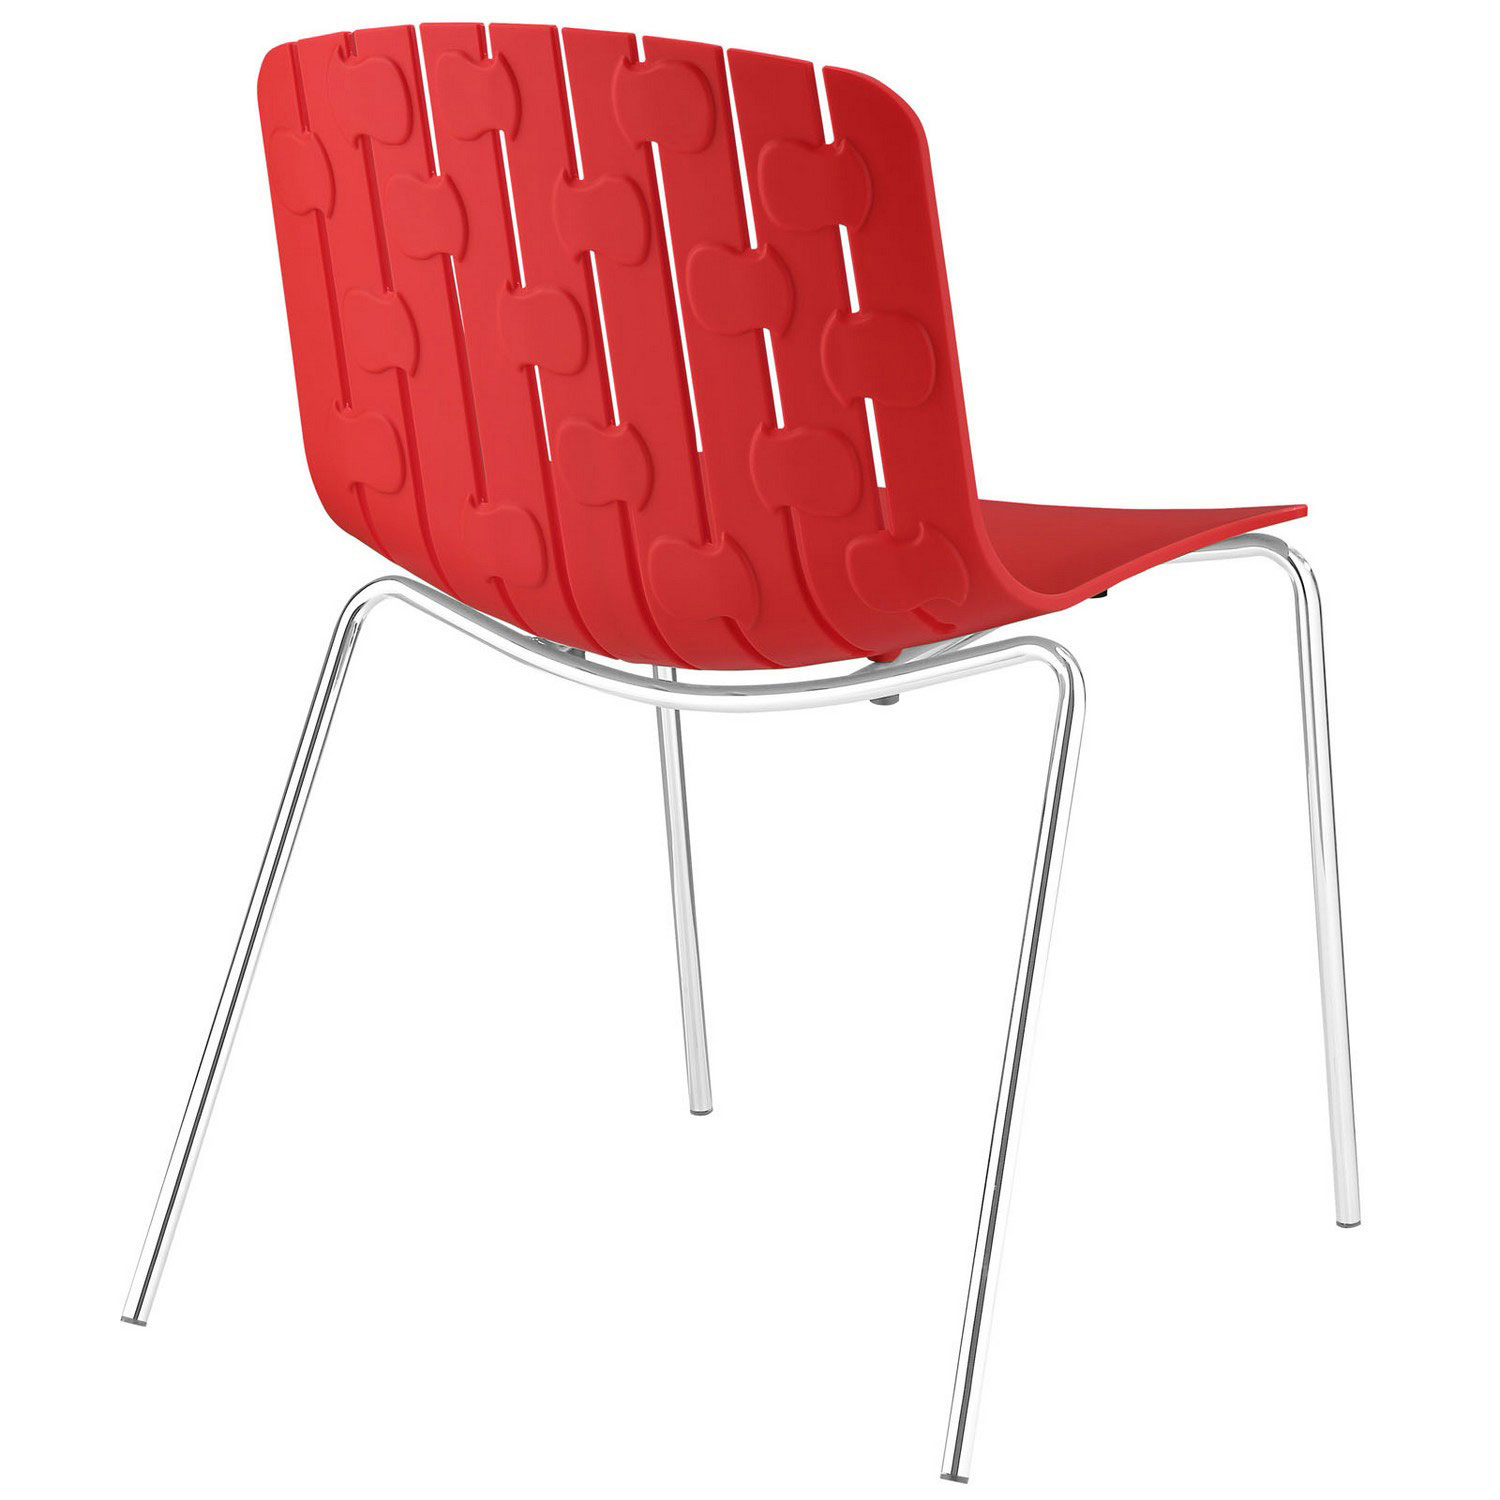 Modway Trace Dining Side Chair - Red